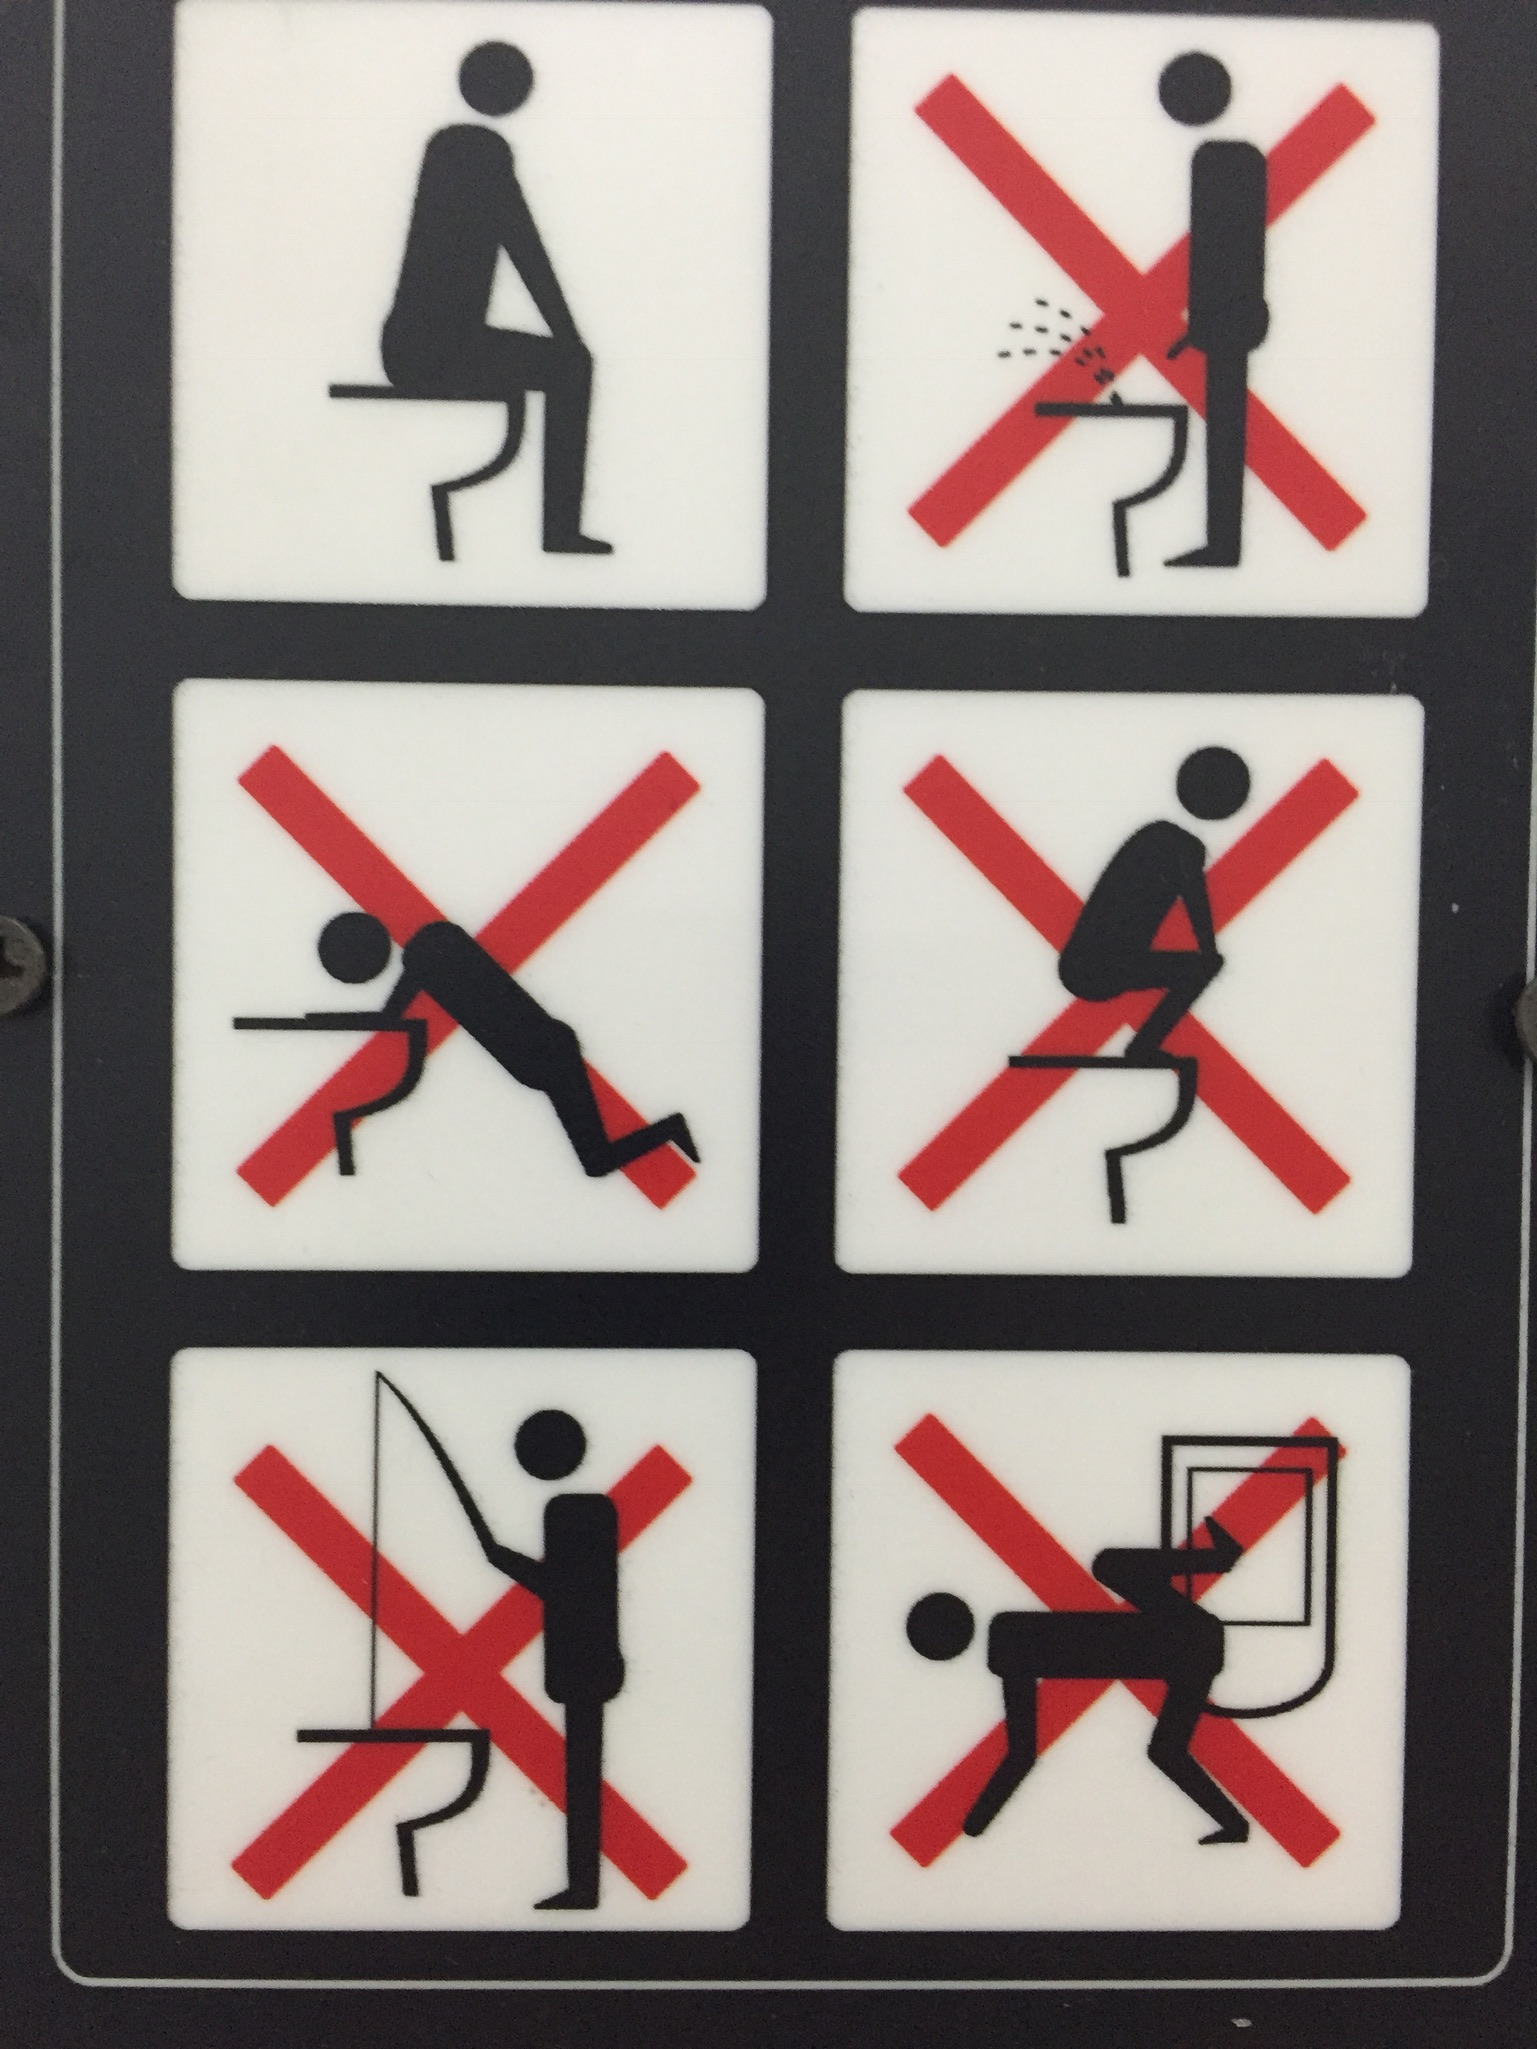 learning the do's and don'ts of toilets in Bali